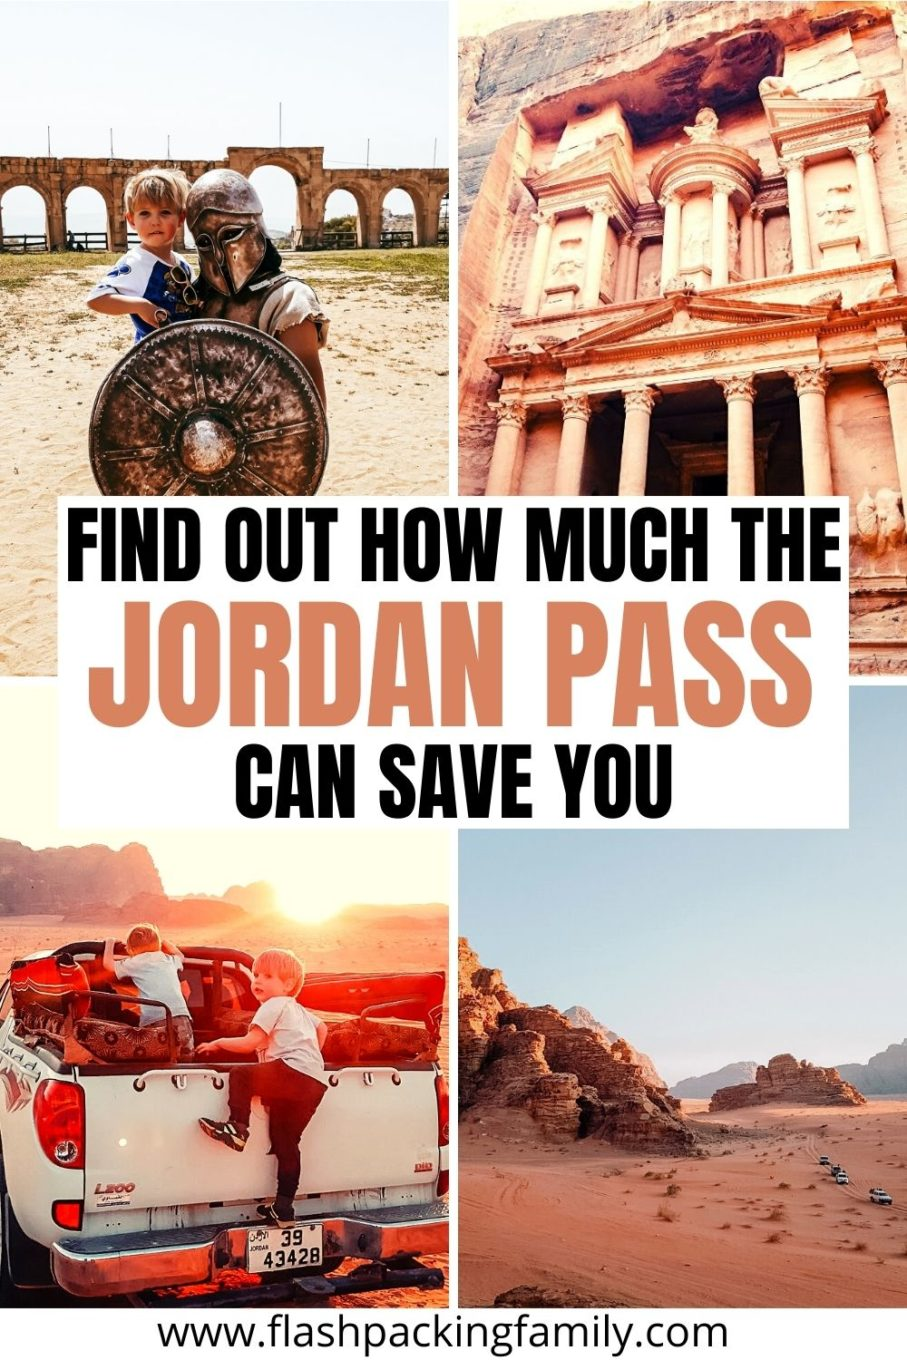 Find out how much the Jordan Pass can save you